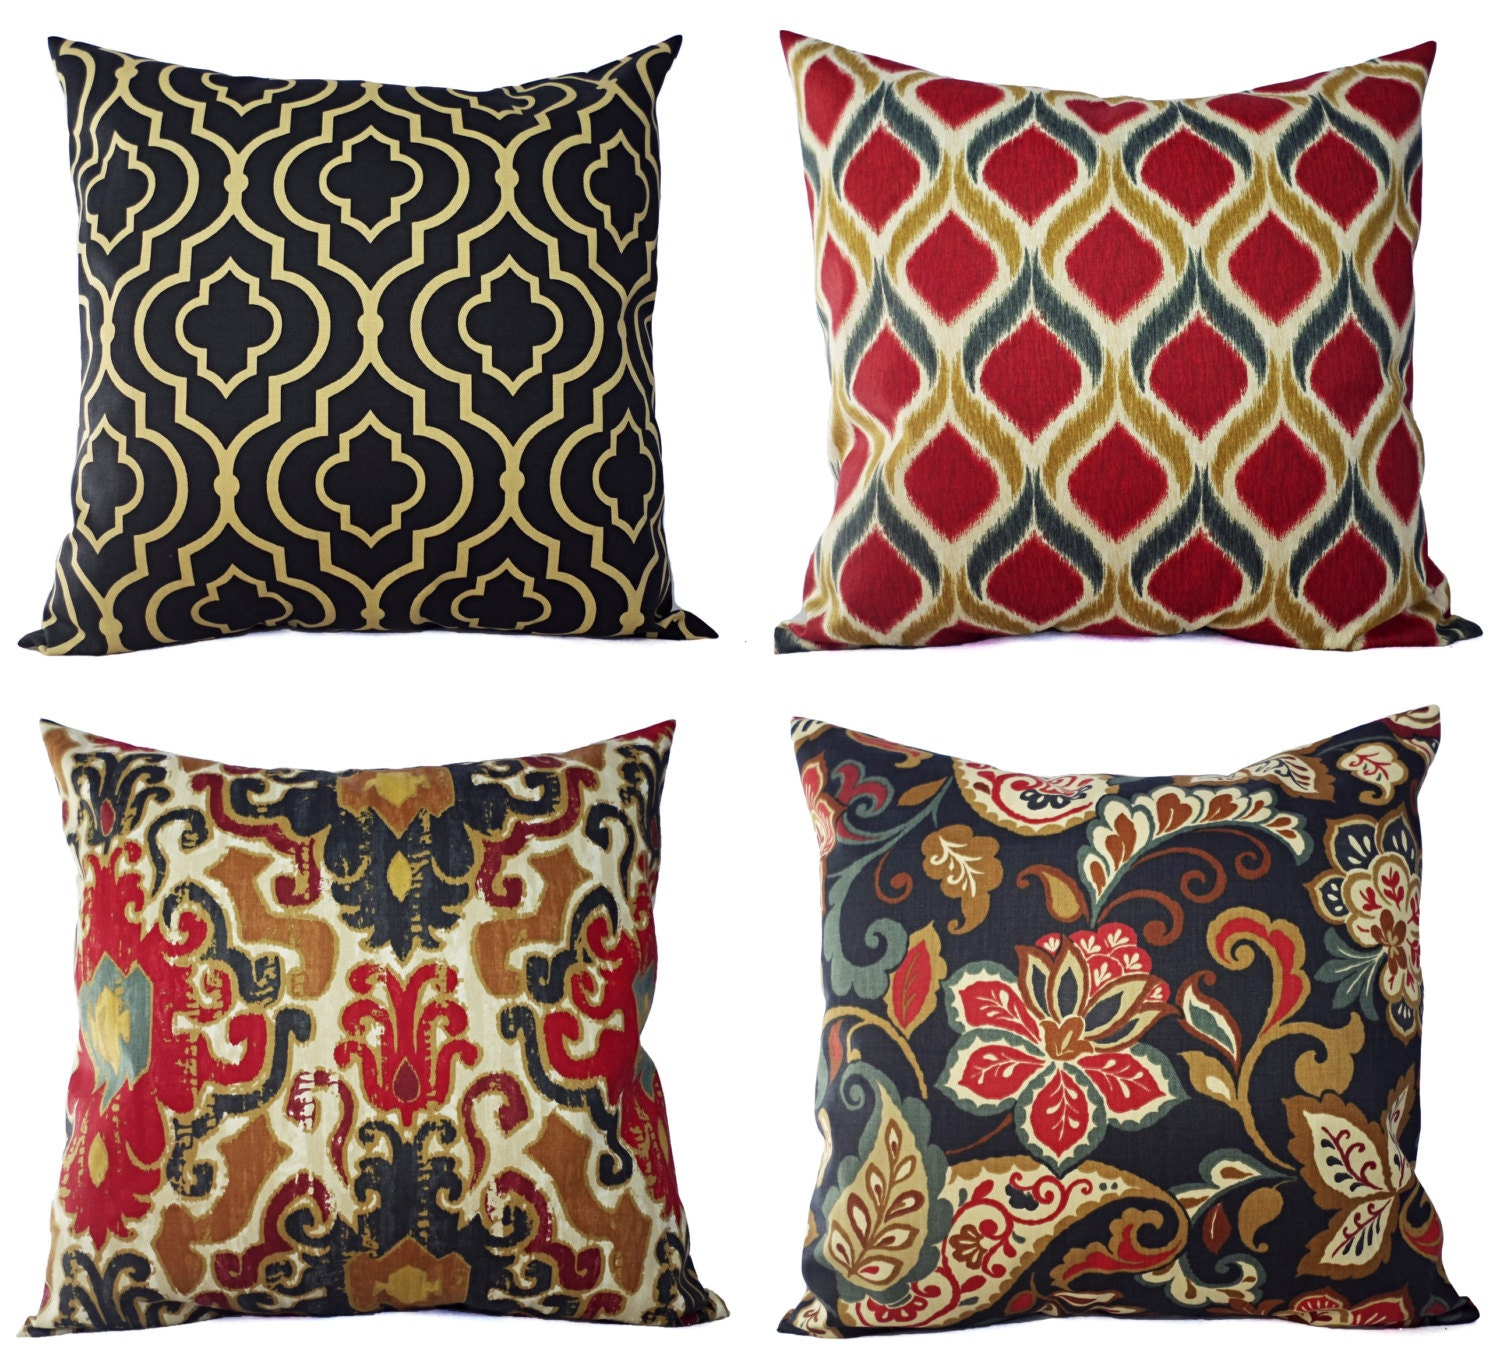 Decorative Pillows Maroon : Decorative Pillow Cover in Navy and Maroon by CastawayCoveDecor